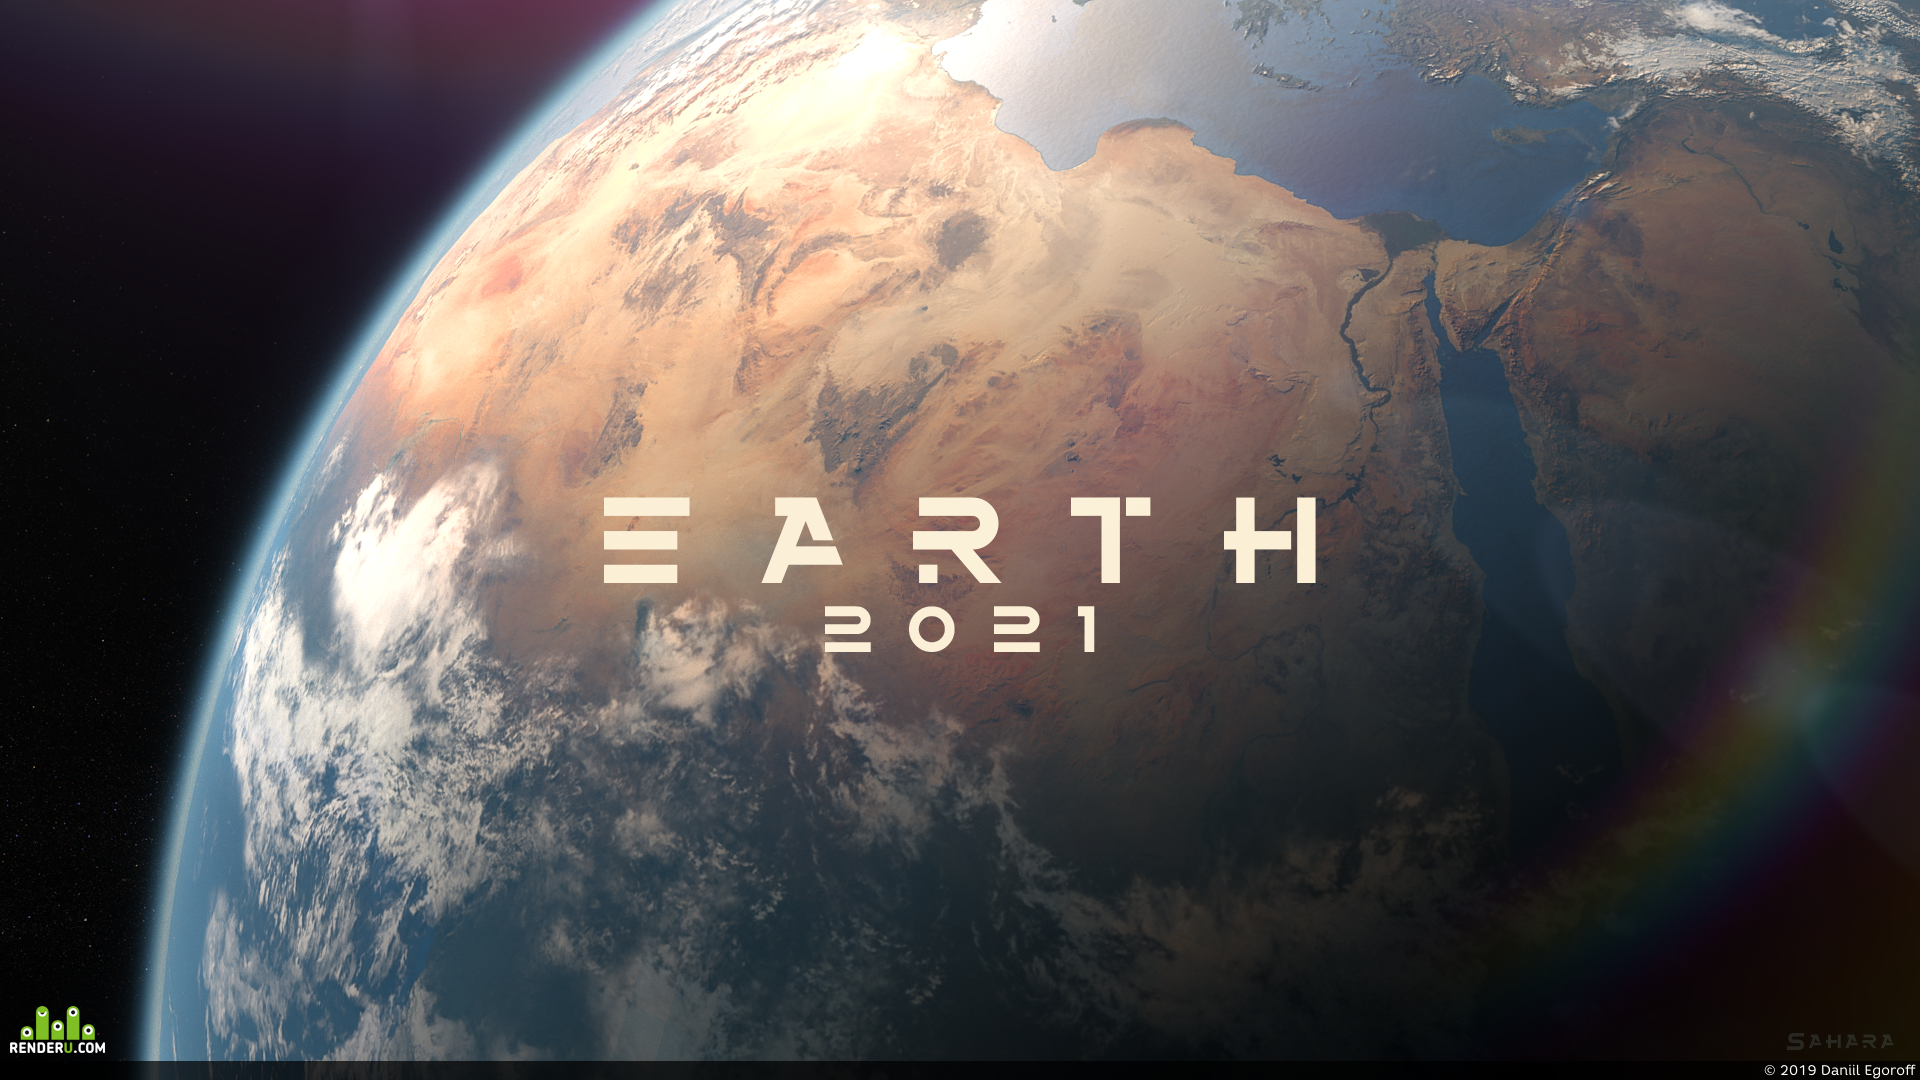 preview Ξ Λ R T H 2 0 2 1